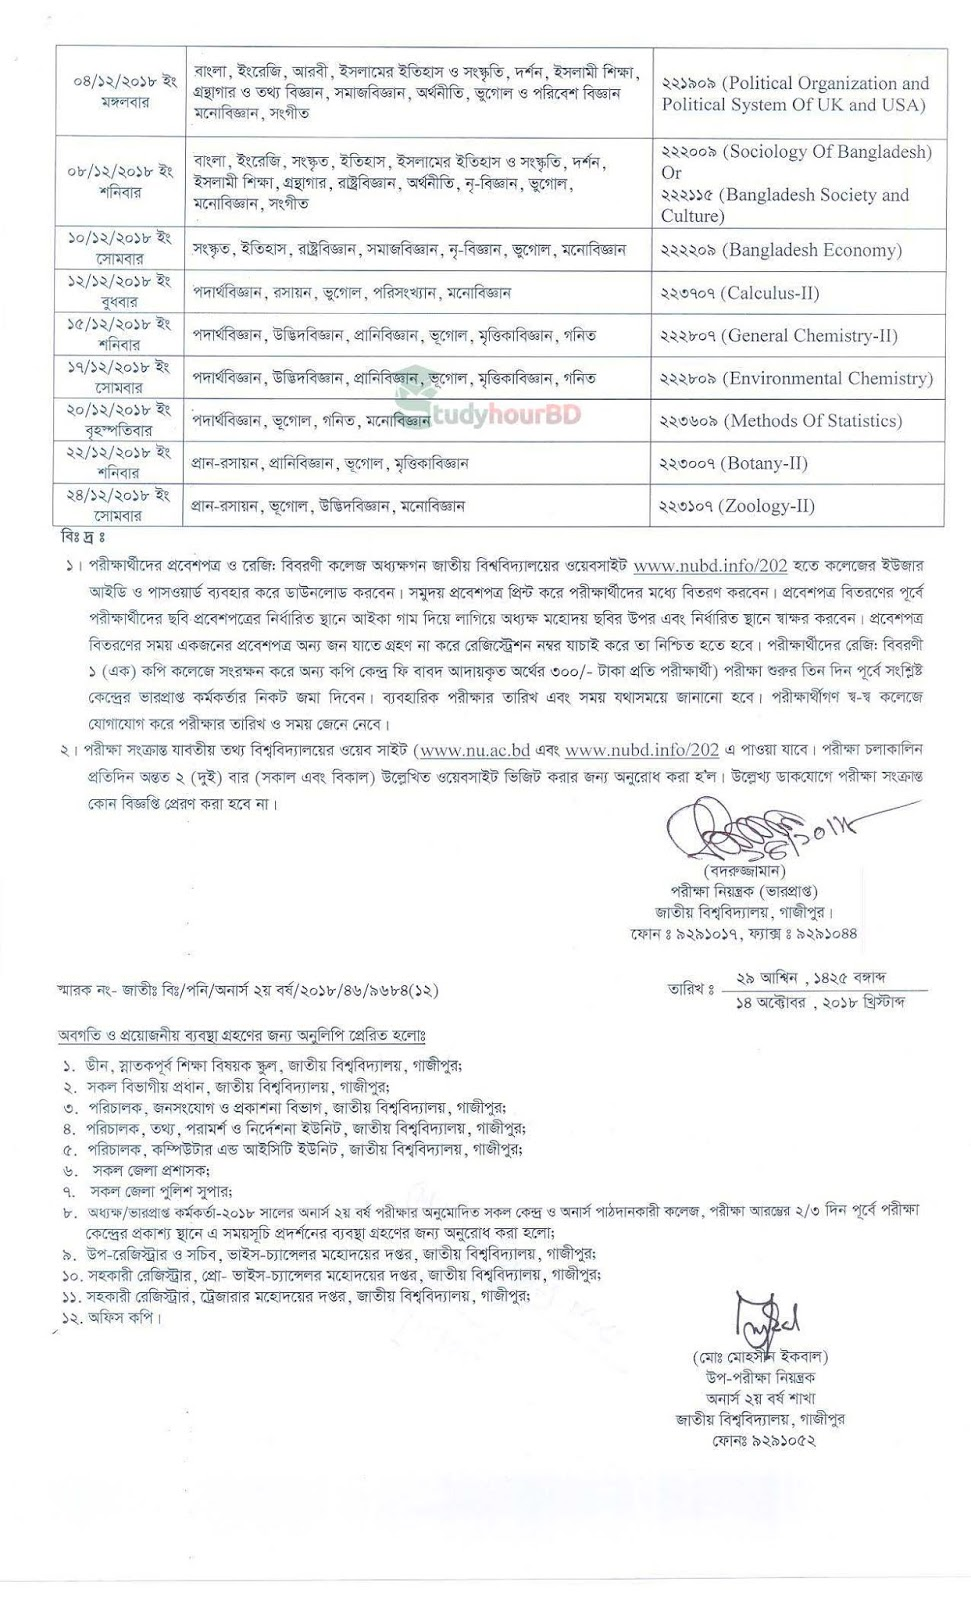 NU Honours 2nd Year Exam Routine 2018 part 2